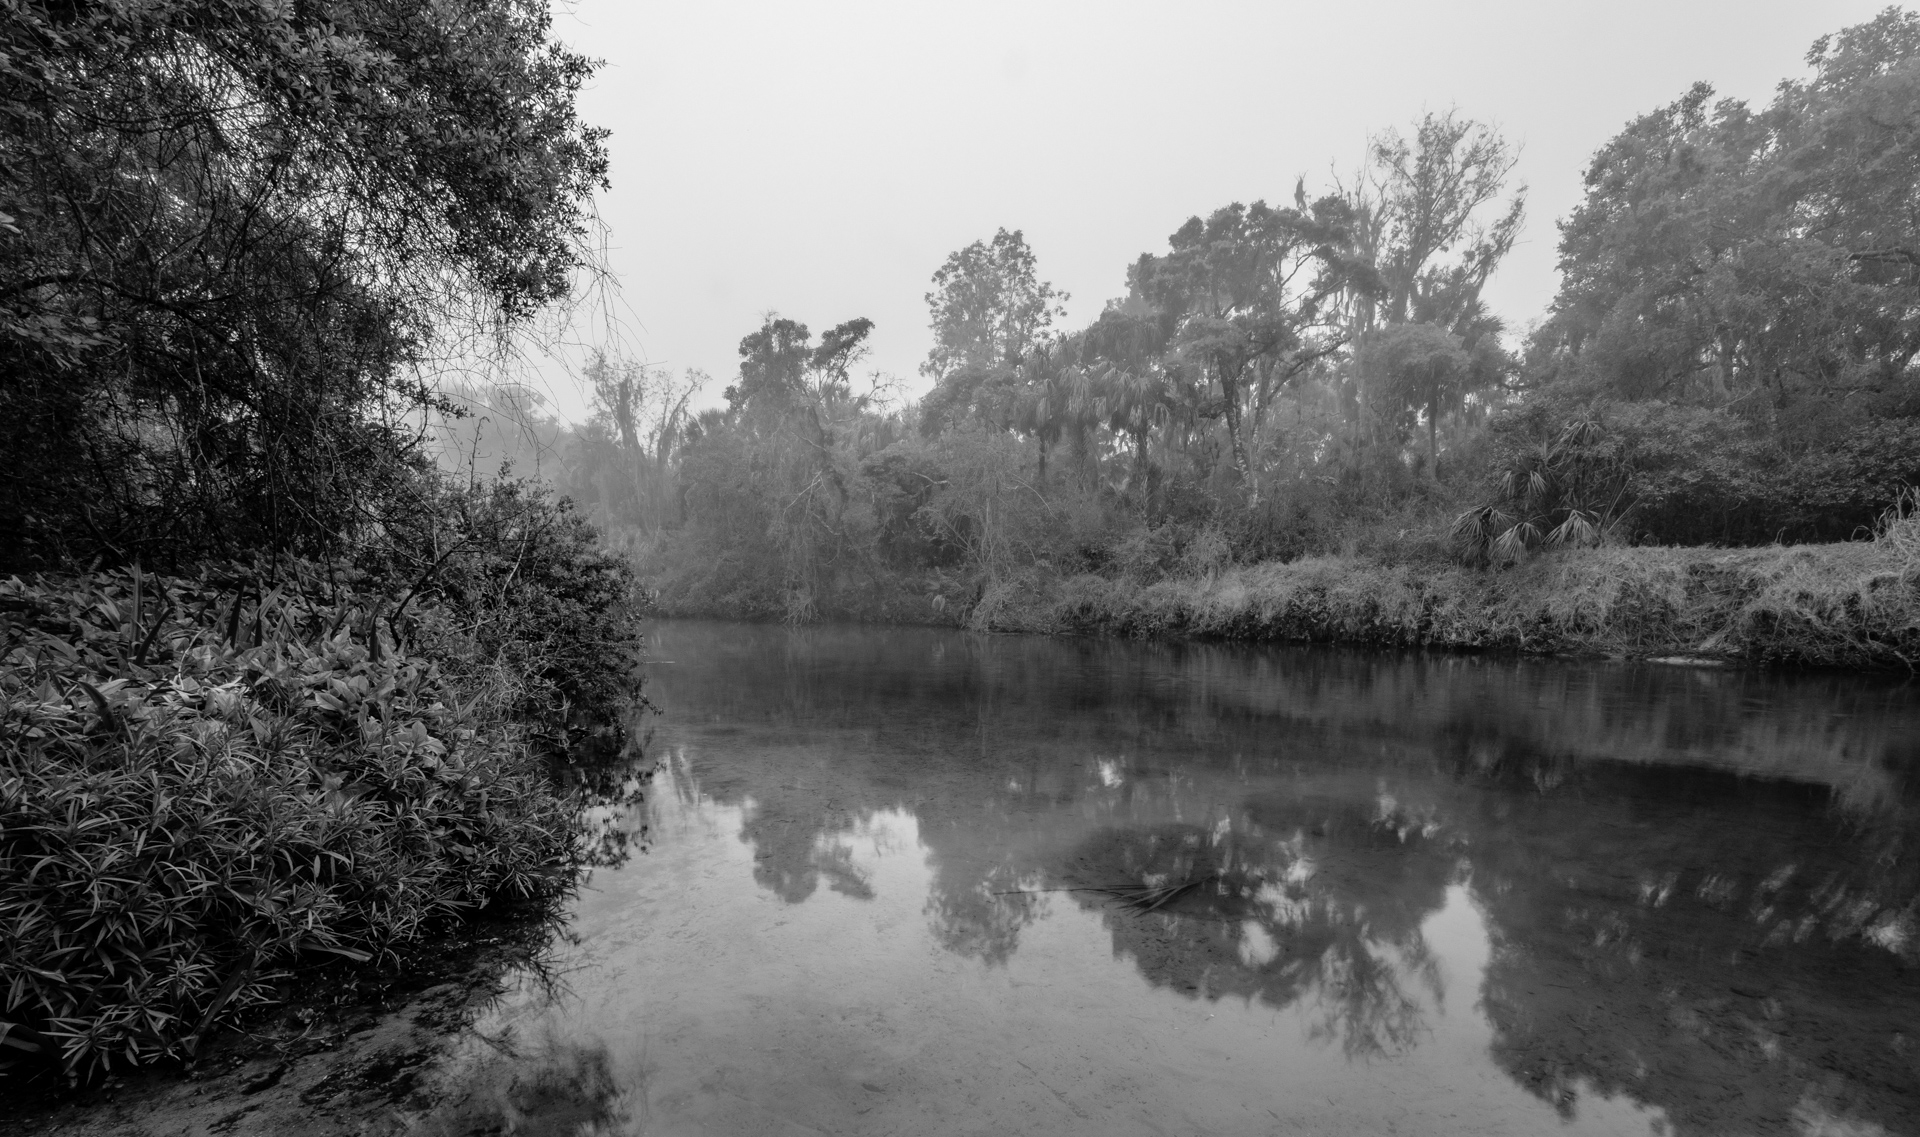 Manatee River with Fog - Up the Lazy River